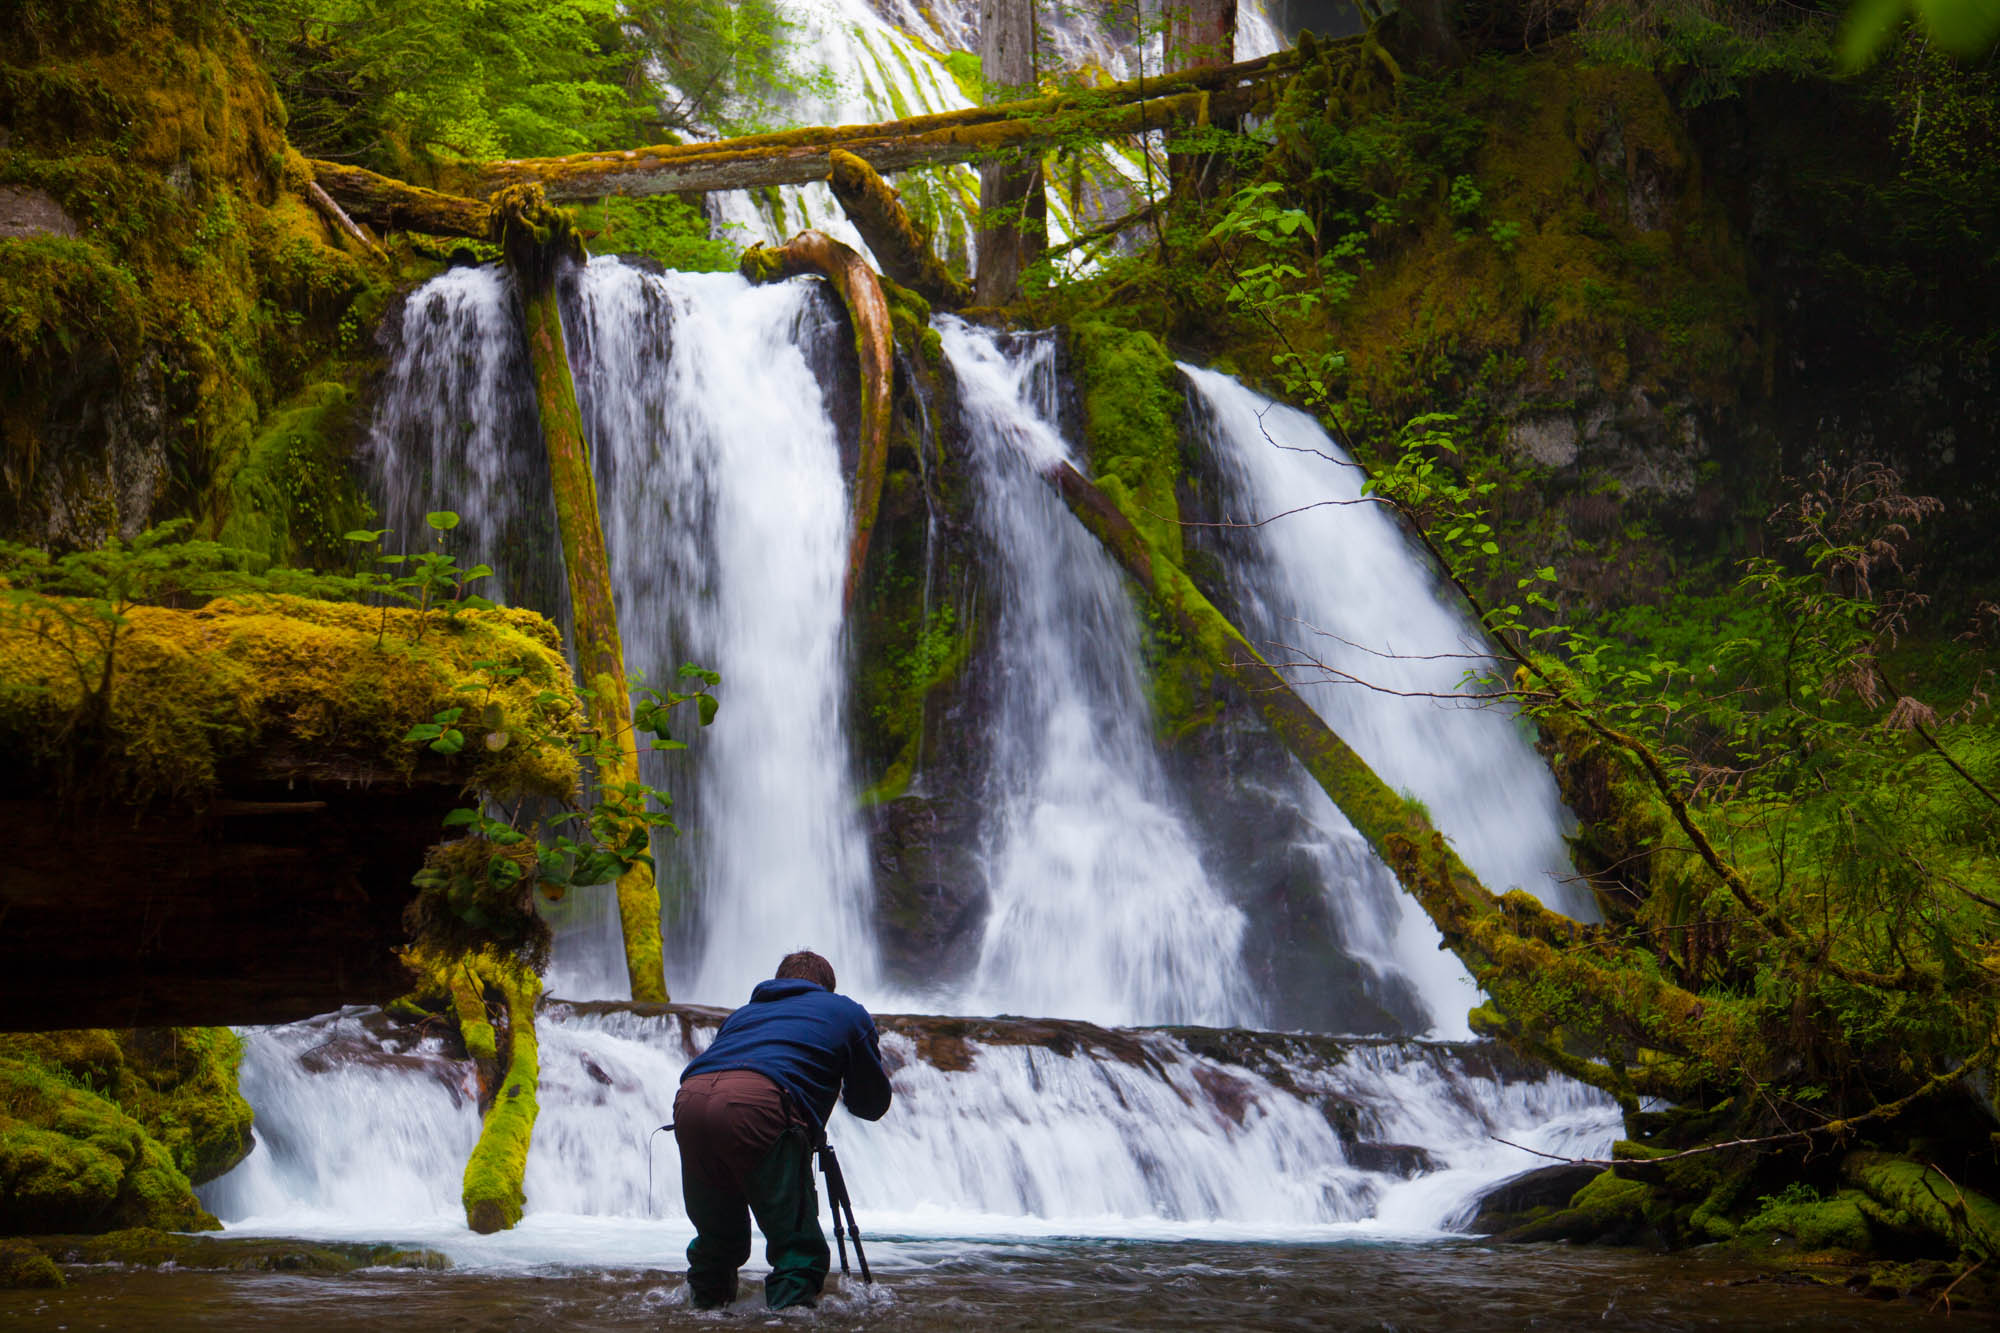 A photographer takes a picture of Lower Panther Falls along Panther Creek near Carson, Washington.